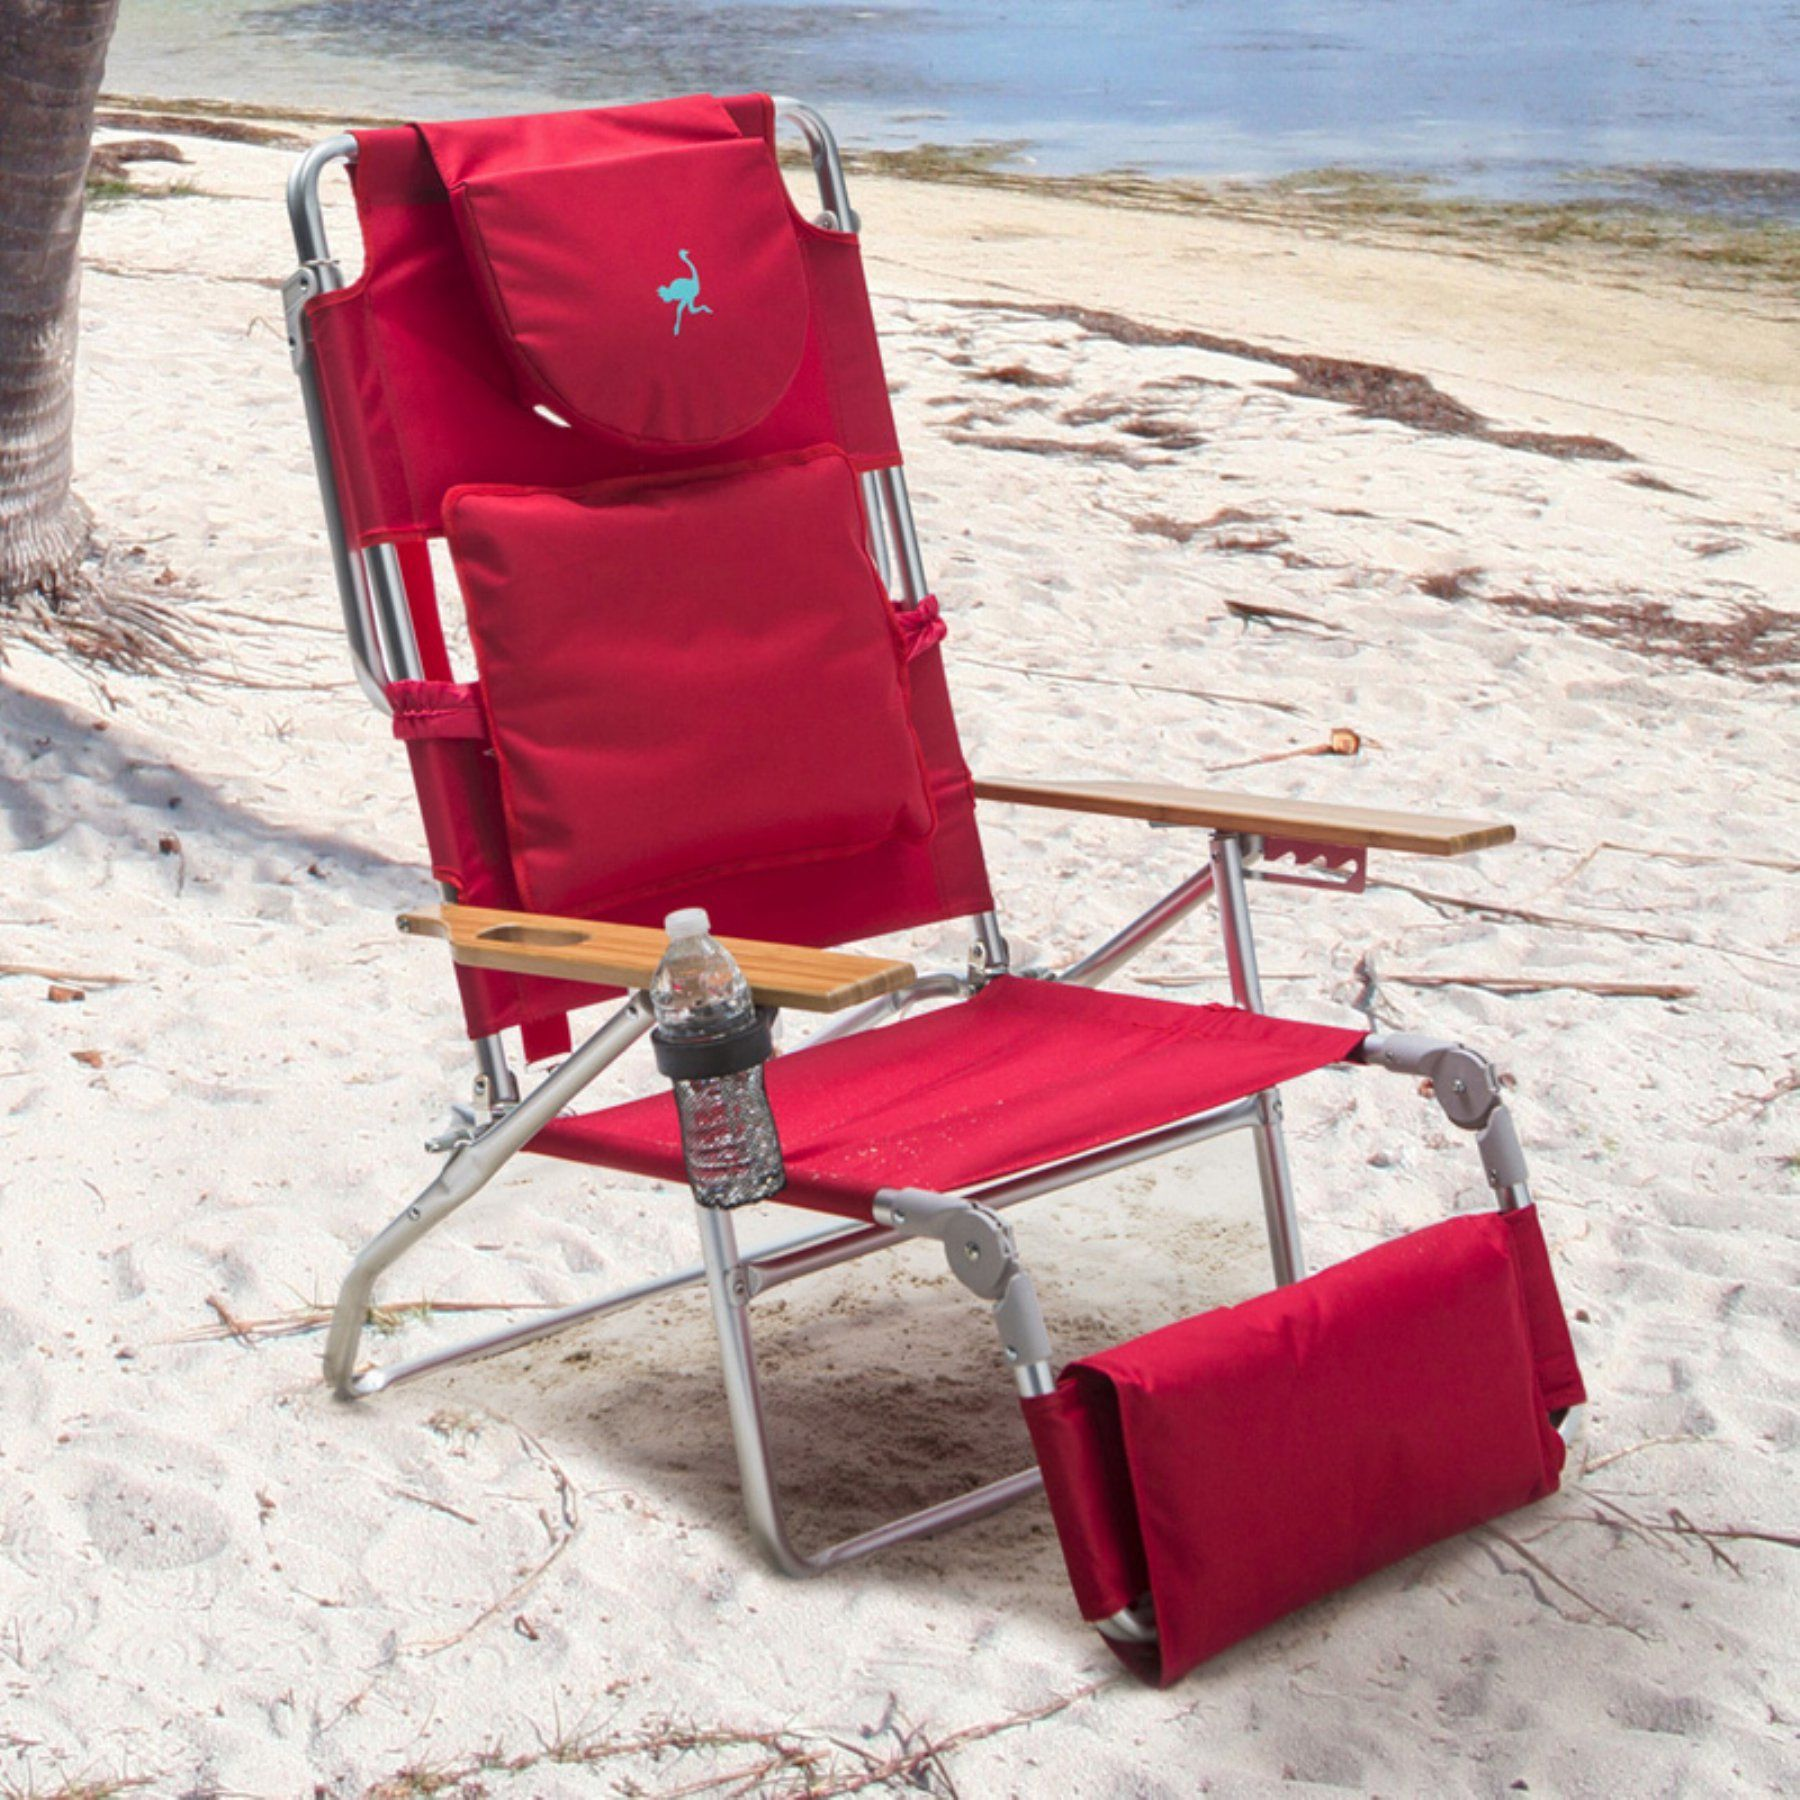 Fine Outdoor Deluxe Padded Ostrich 3 N 1 Beach Chair With Free Creativecarmelina Interior Chair Design Creativecarmelinacom